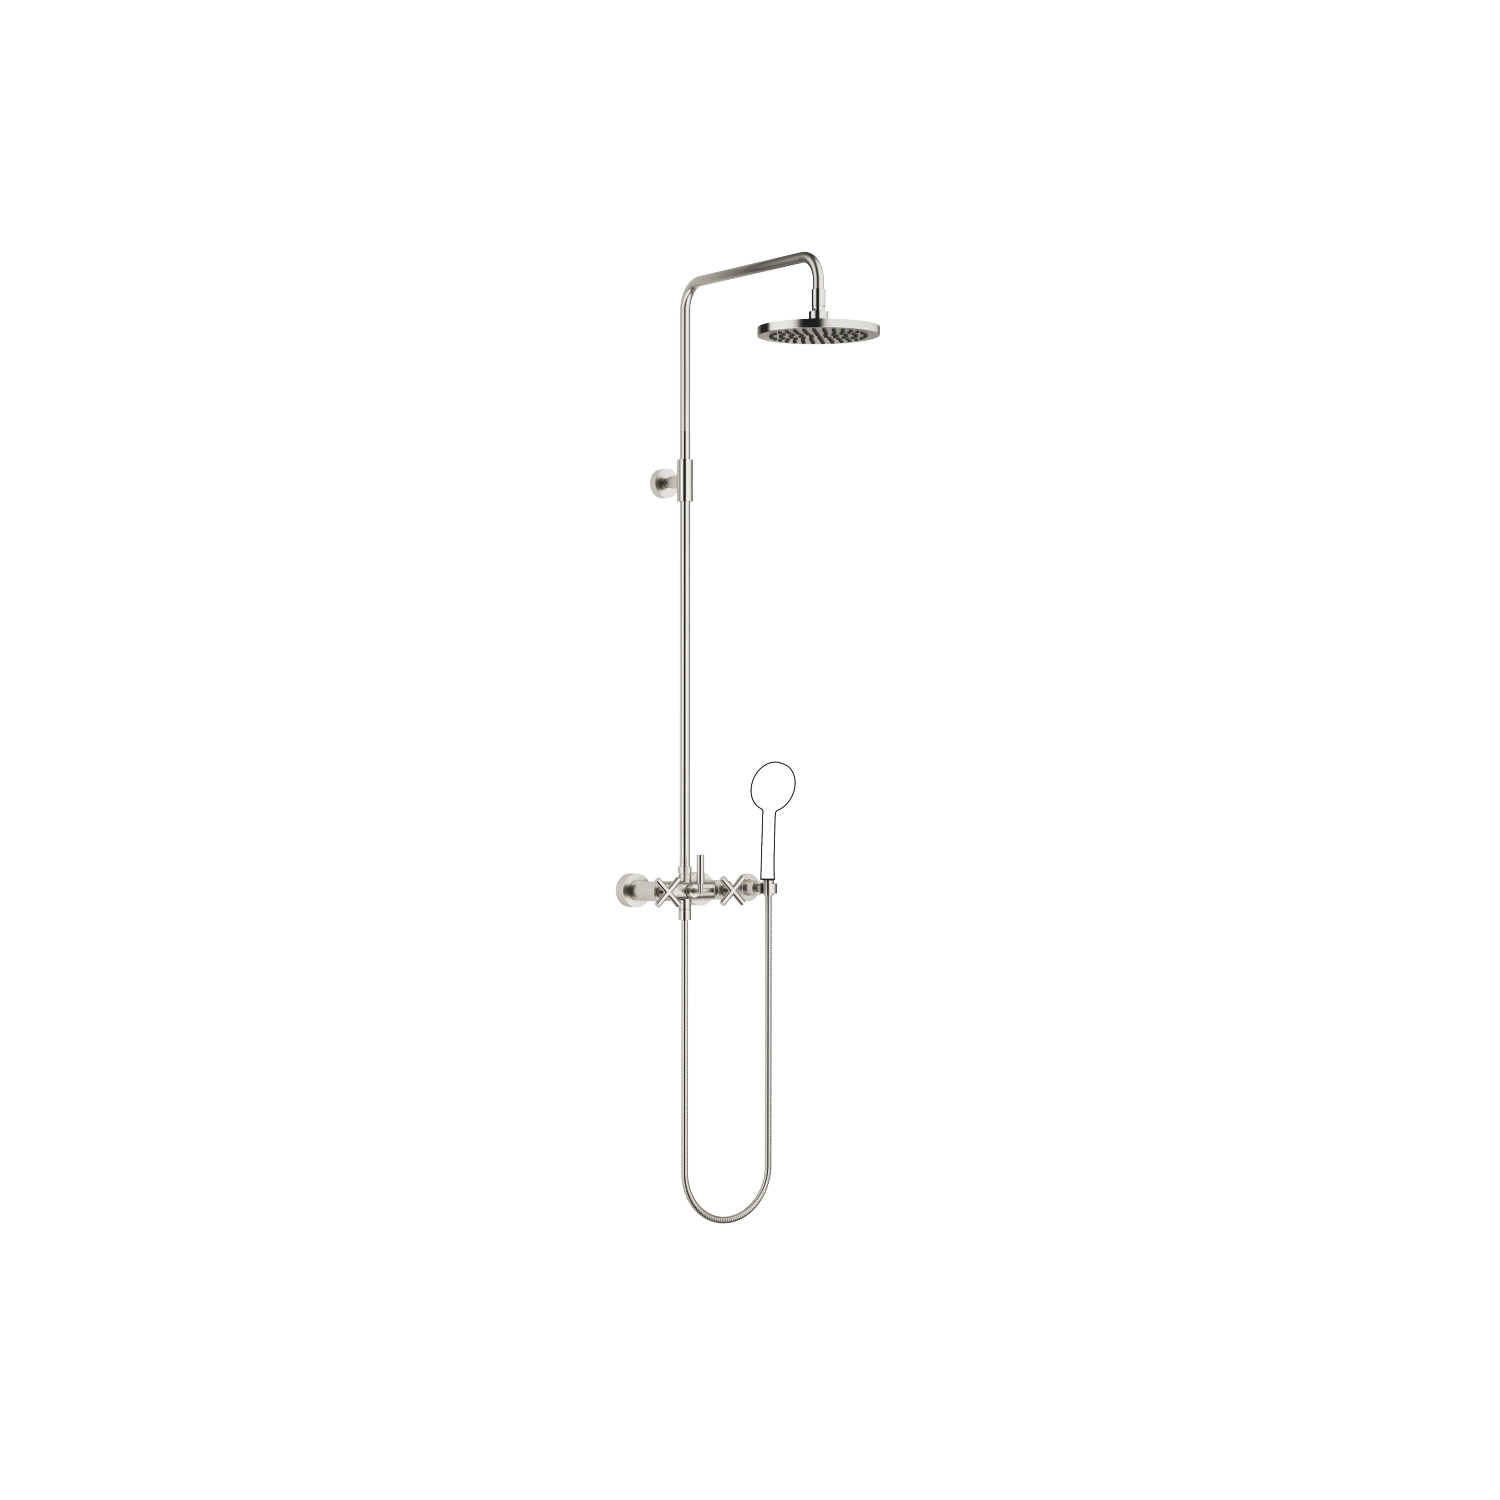 Exposed shower set without hand shower - platinum matte